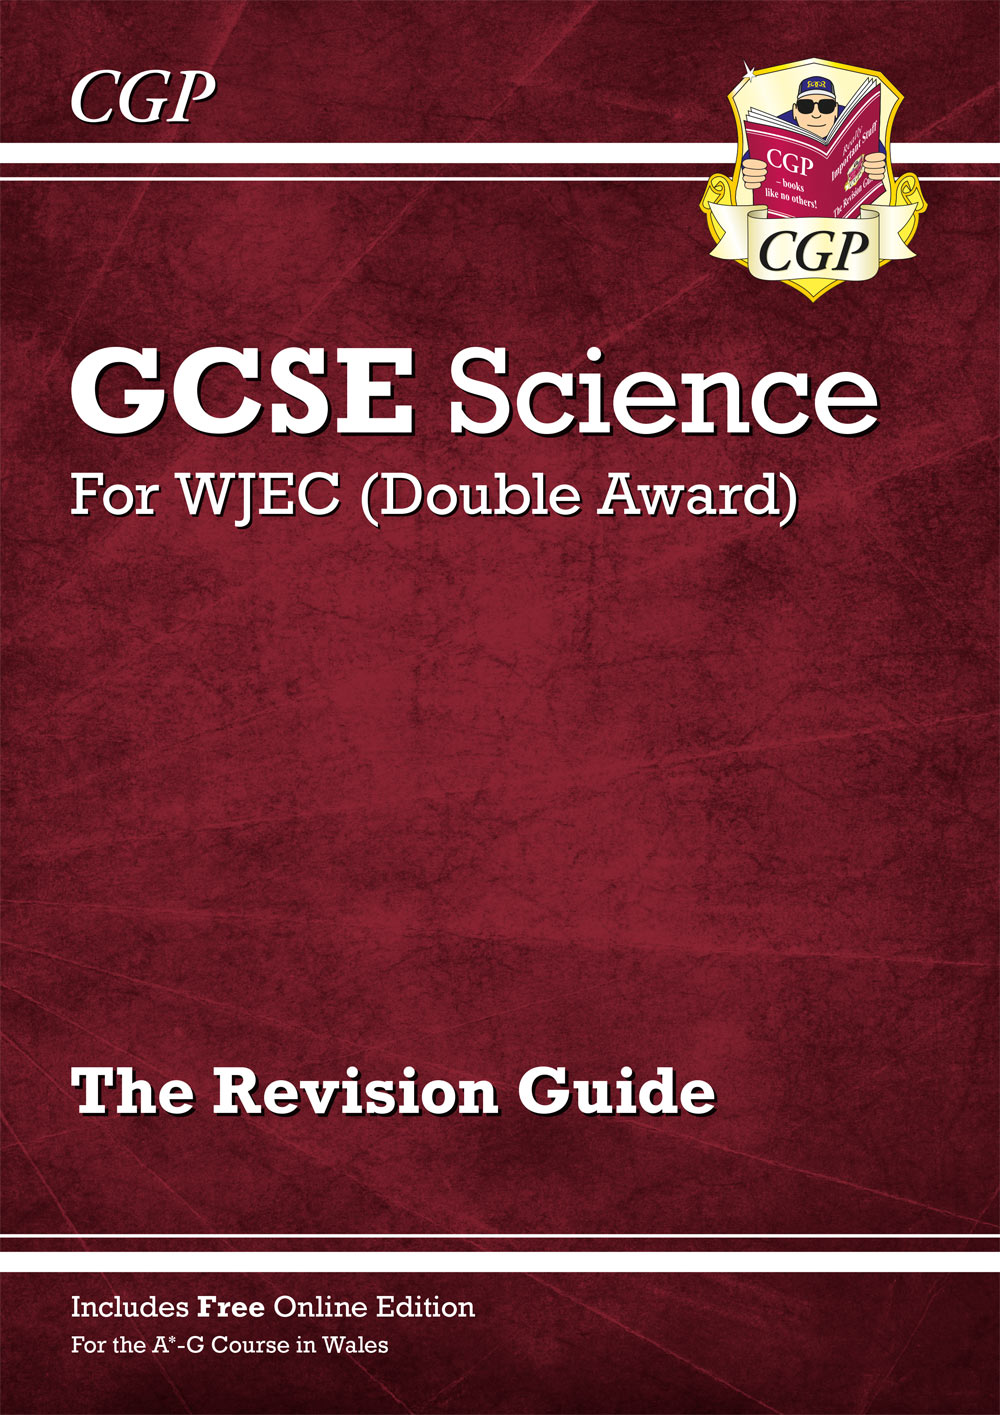 SWR41 - WJEC GCSE Science Double Award - Revision Guide (with Online Edition)